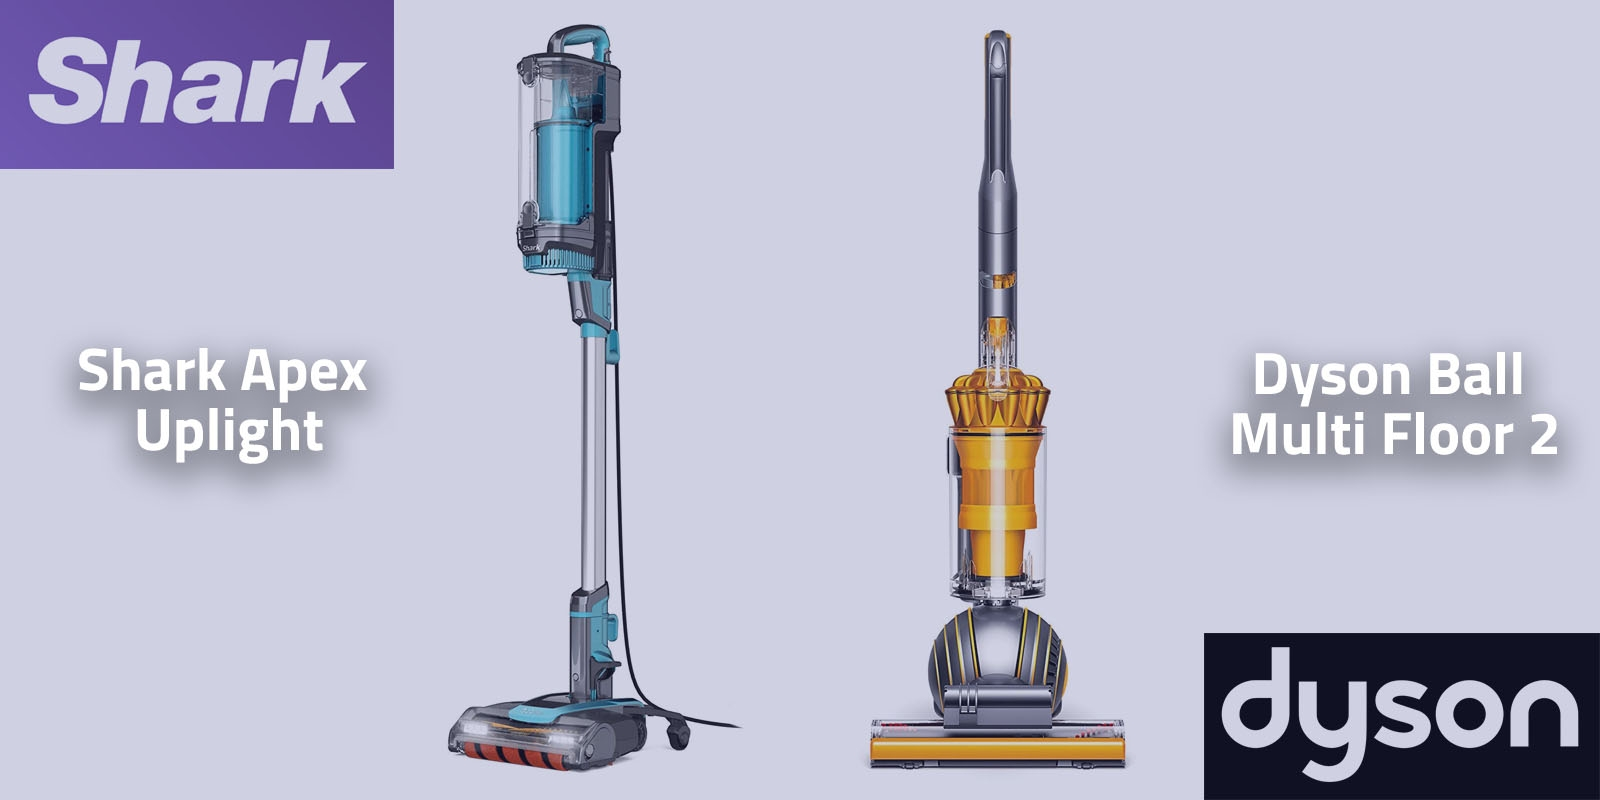 Shark Apex Uplight vs Dyson Ball Multi Floor 2